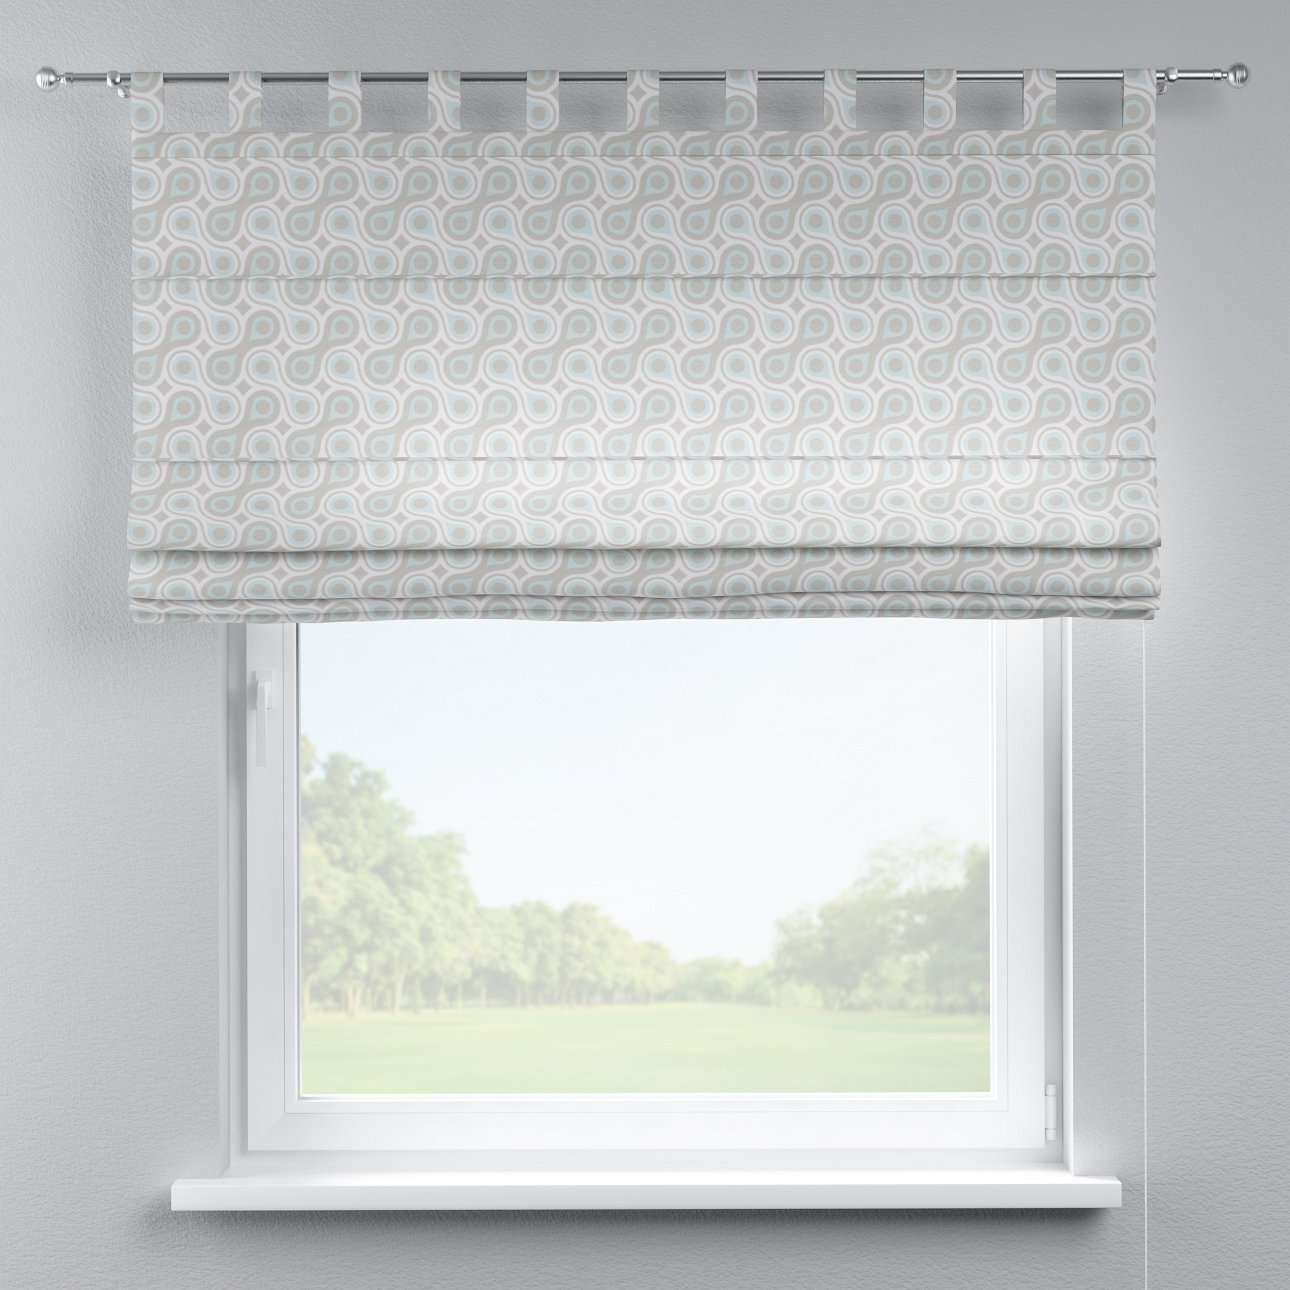 Verona tab top roman blind 80 x 170 cm (31.5 x 67 inch) in collection Flowers, fabric: 311-13